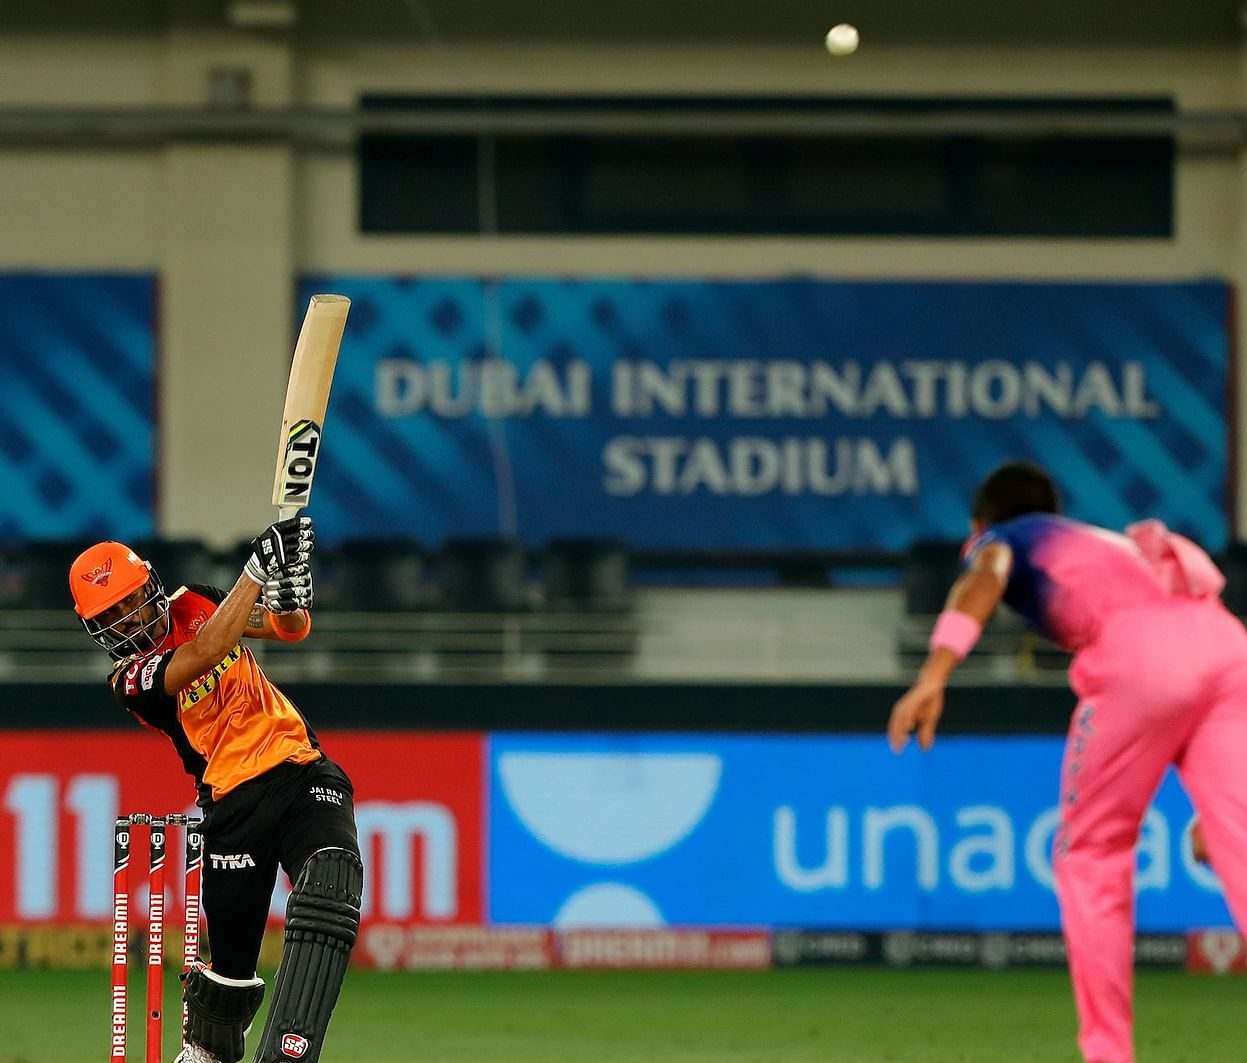 SRH ride Pandey-Shankar stand to beat RR, keep afloat